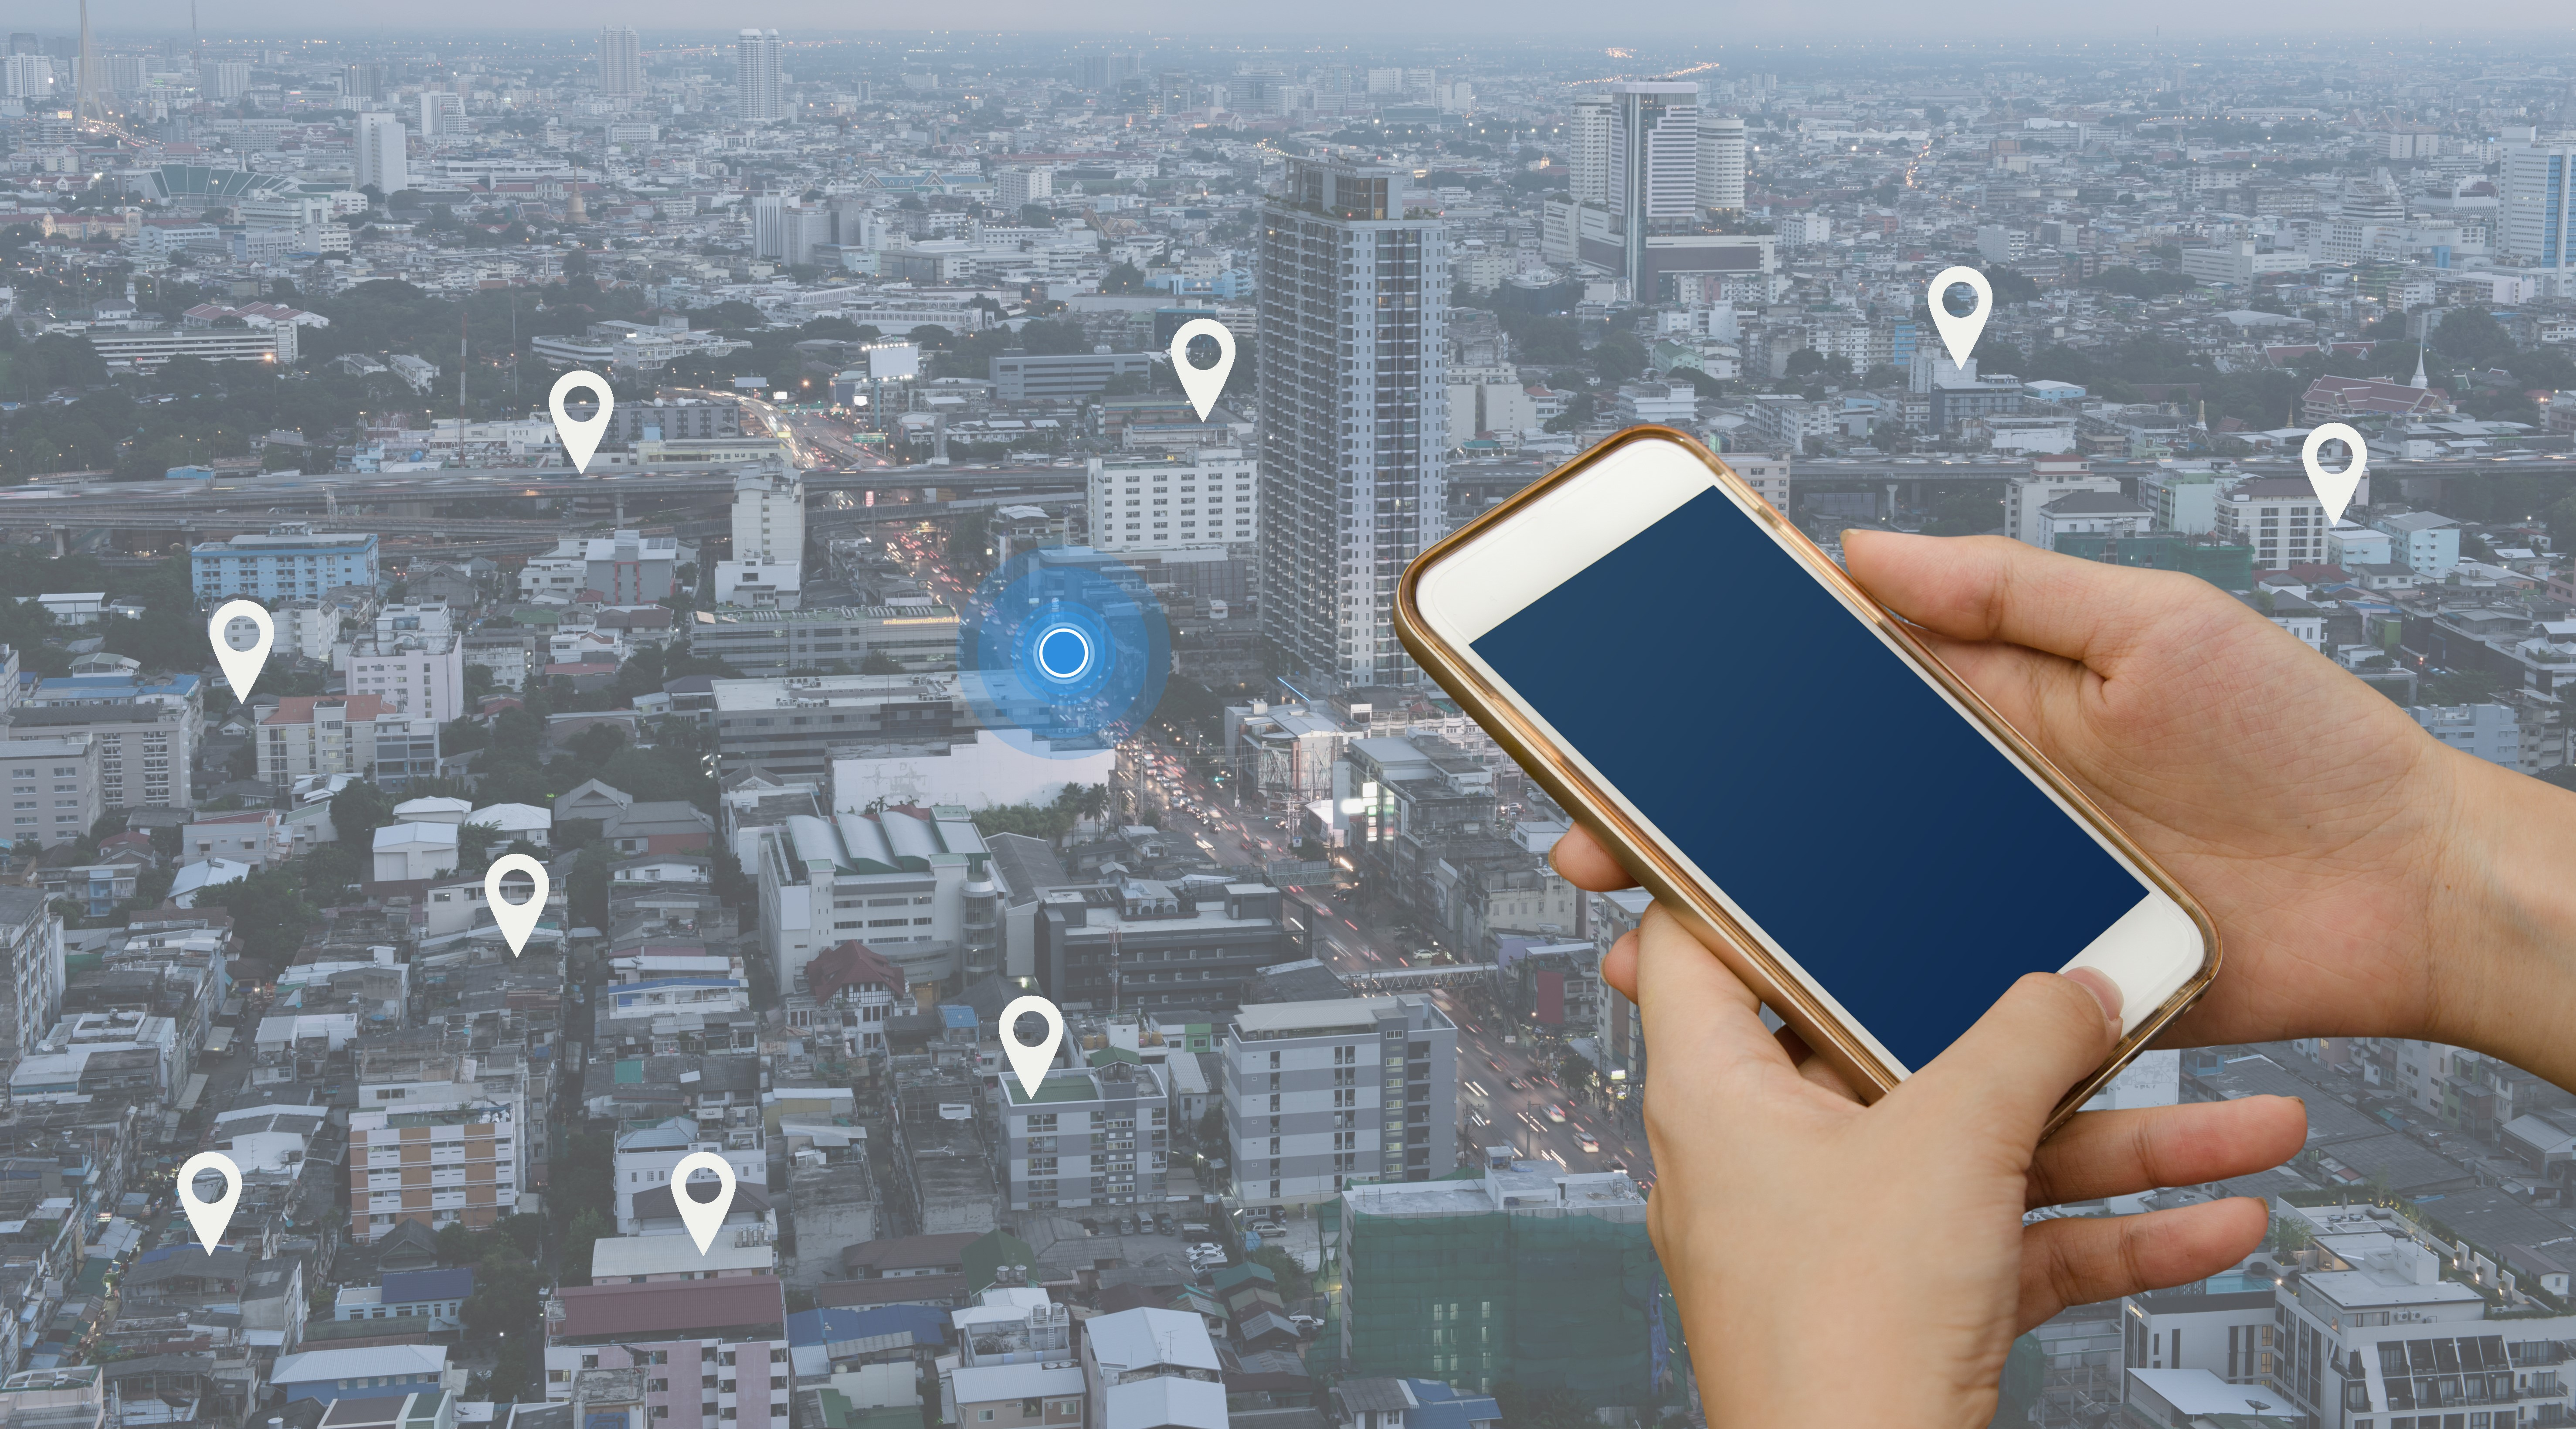 Verizon, AT&T, Sprint Feel The Heat From Location Data Sharing